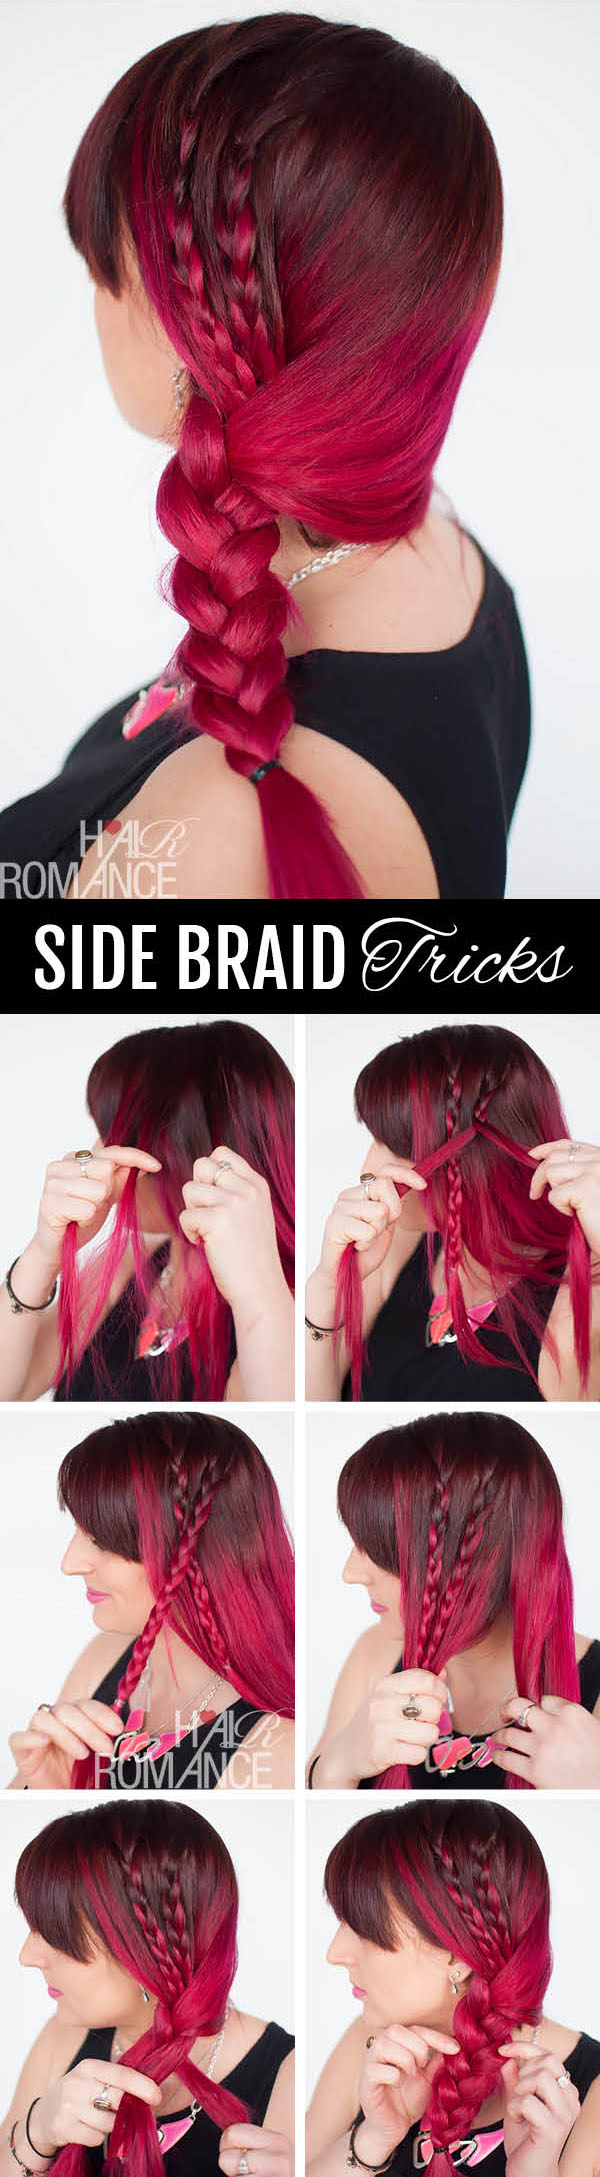 Hair Romance - side braid hairstyle tutorial plus tricks